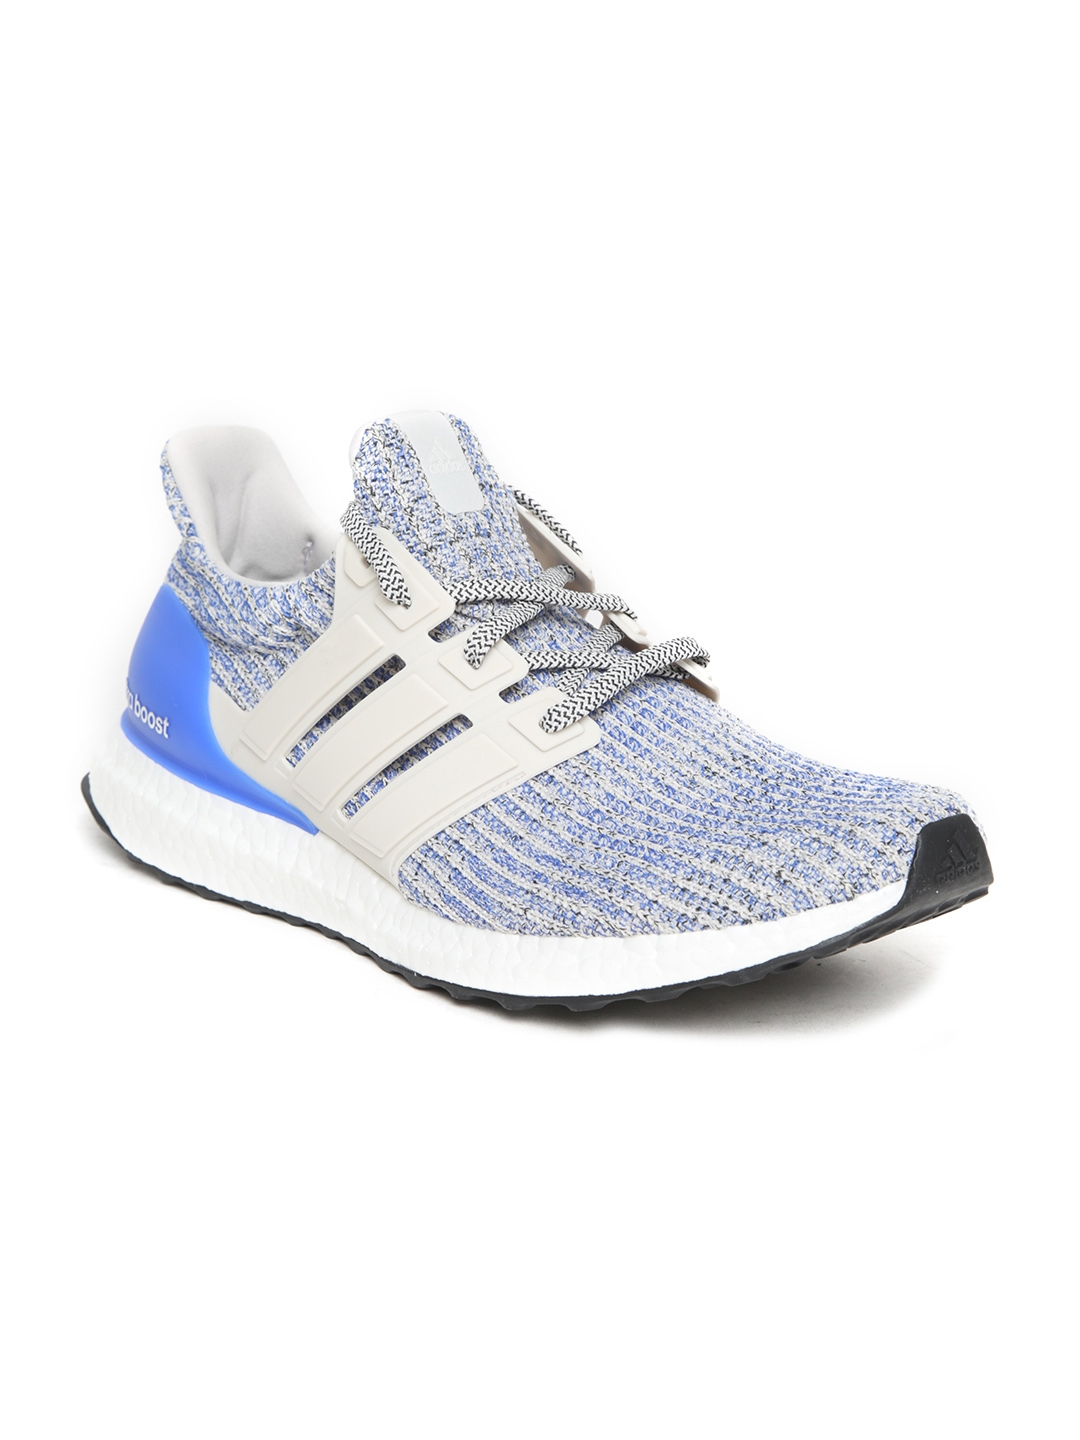 34e97341d8a Buy ADIDAS Men Grey   Blue Ultraboost Running Shoes - Sports Shoes ...